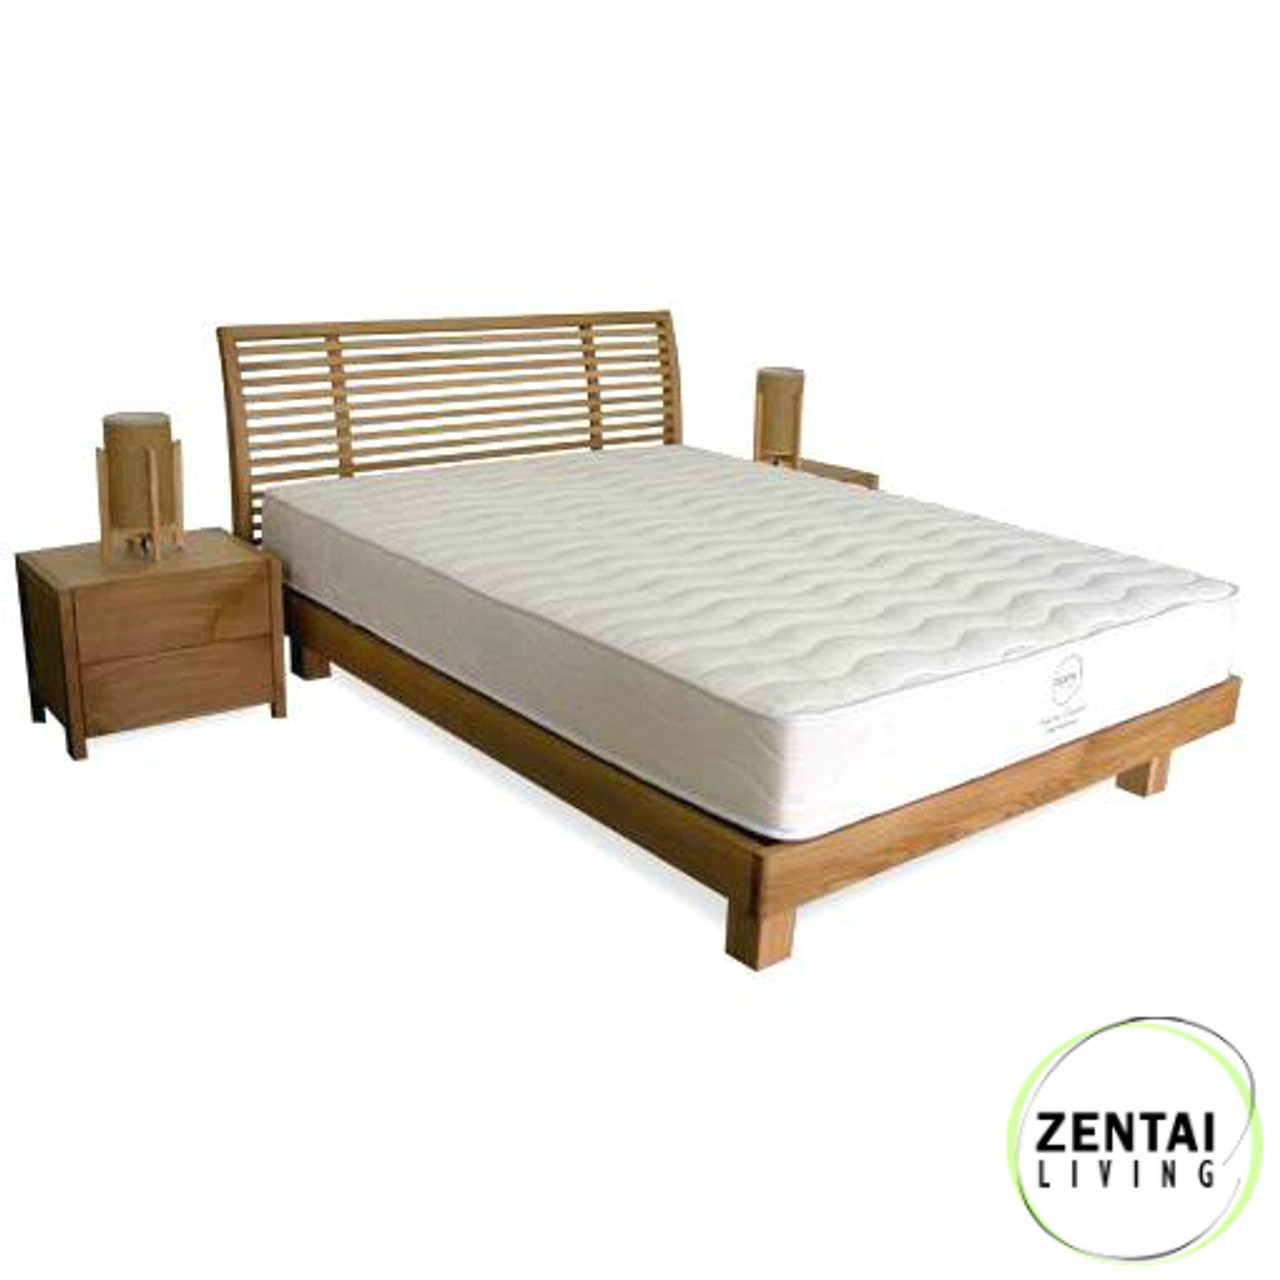 Aura Solid Wood Bed Frame In American Oak Zentai Living